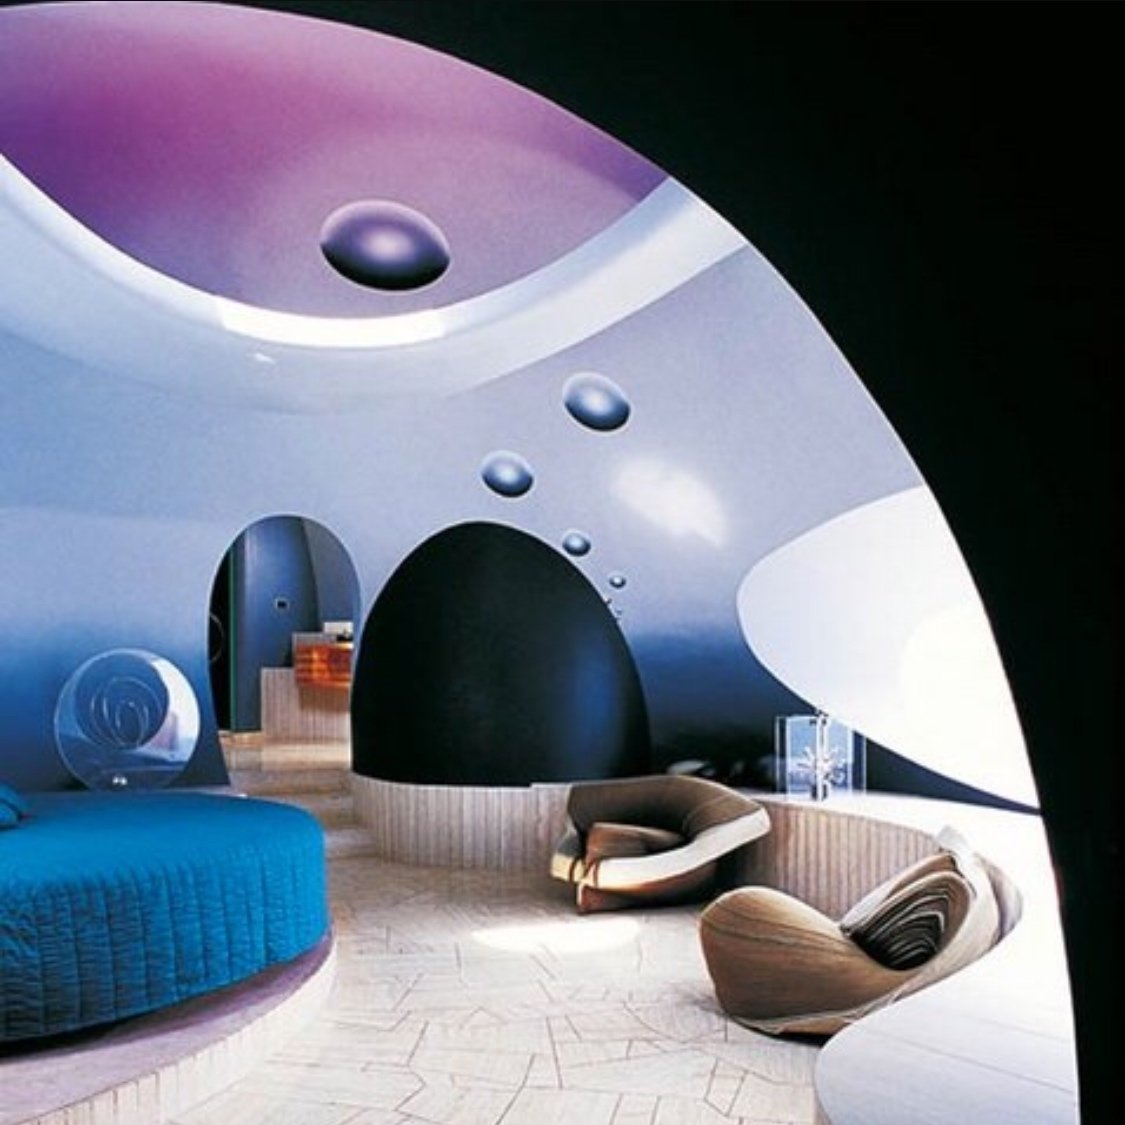 Pierre Cardin's Palais Bulles (bubble palace) by Antti Lovag 1975  The Future was...